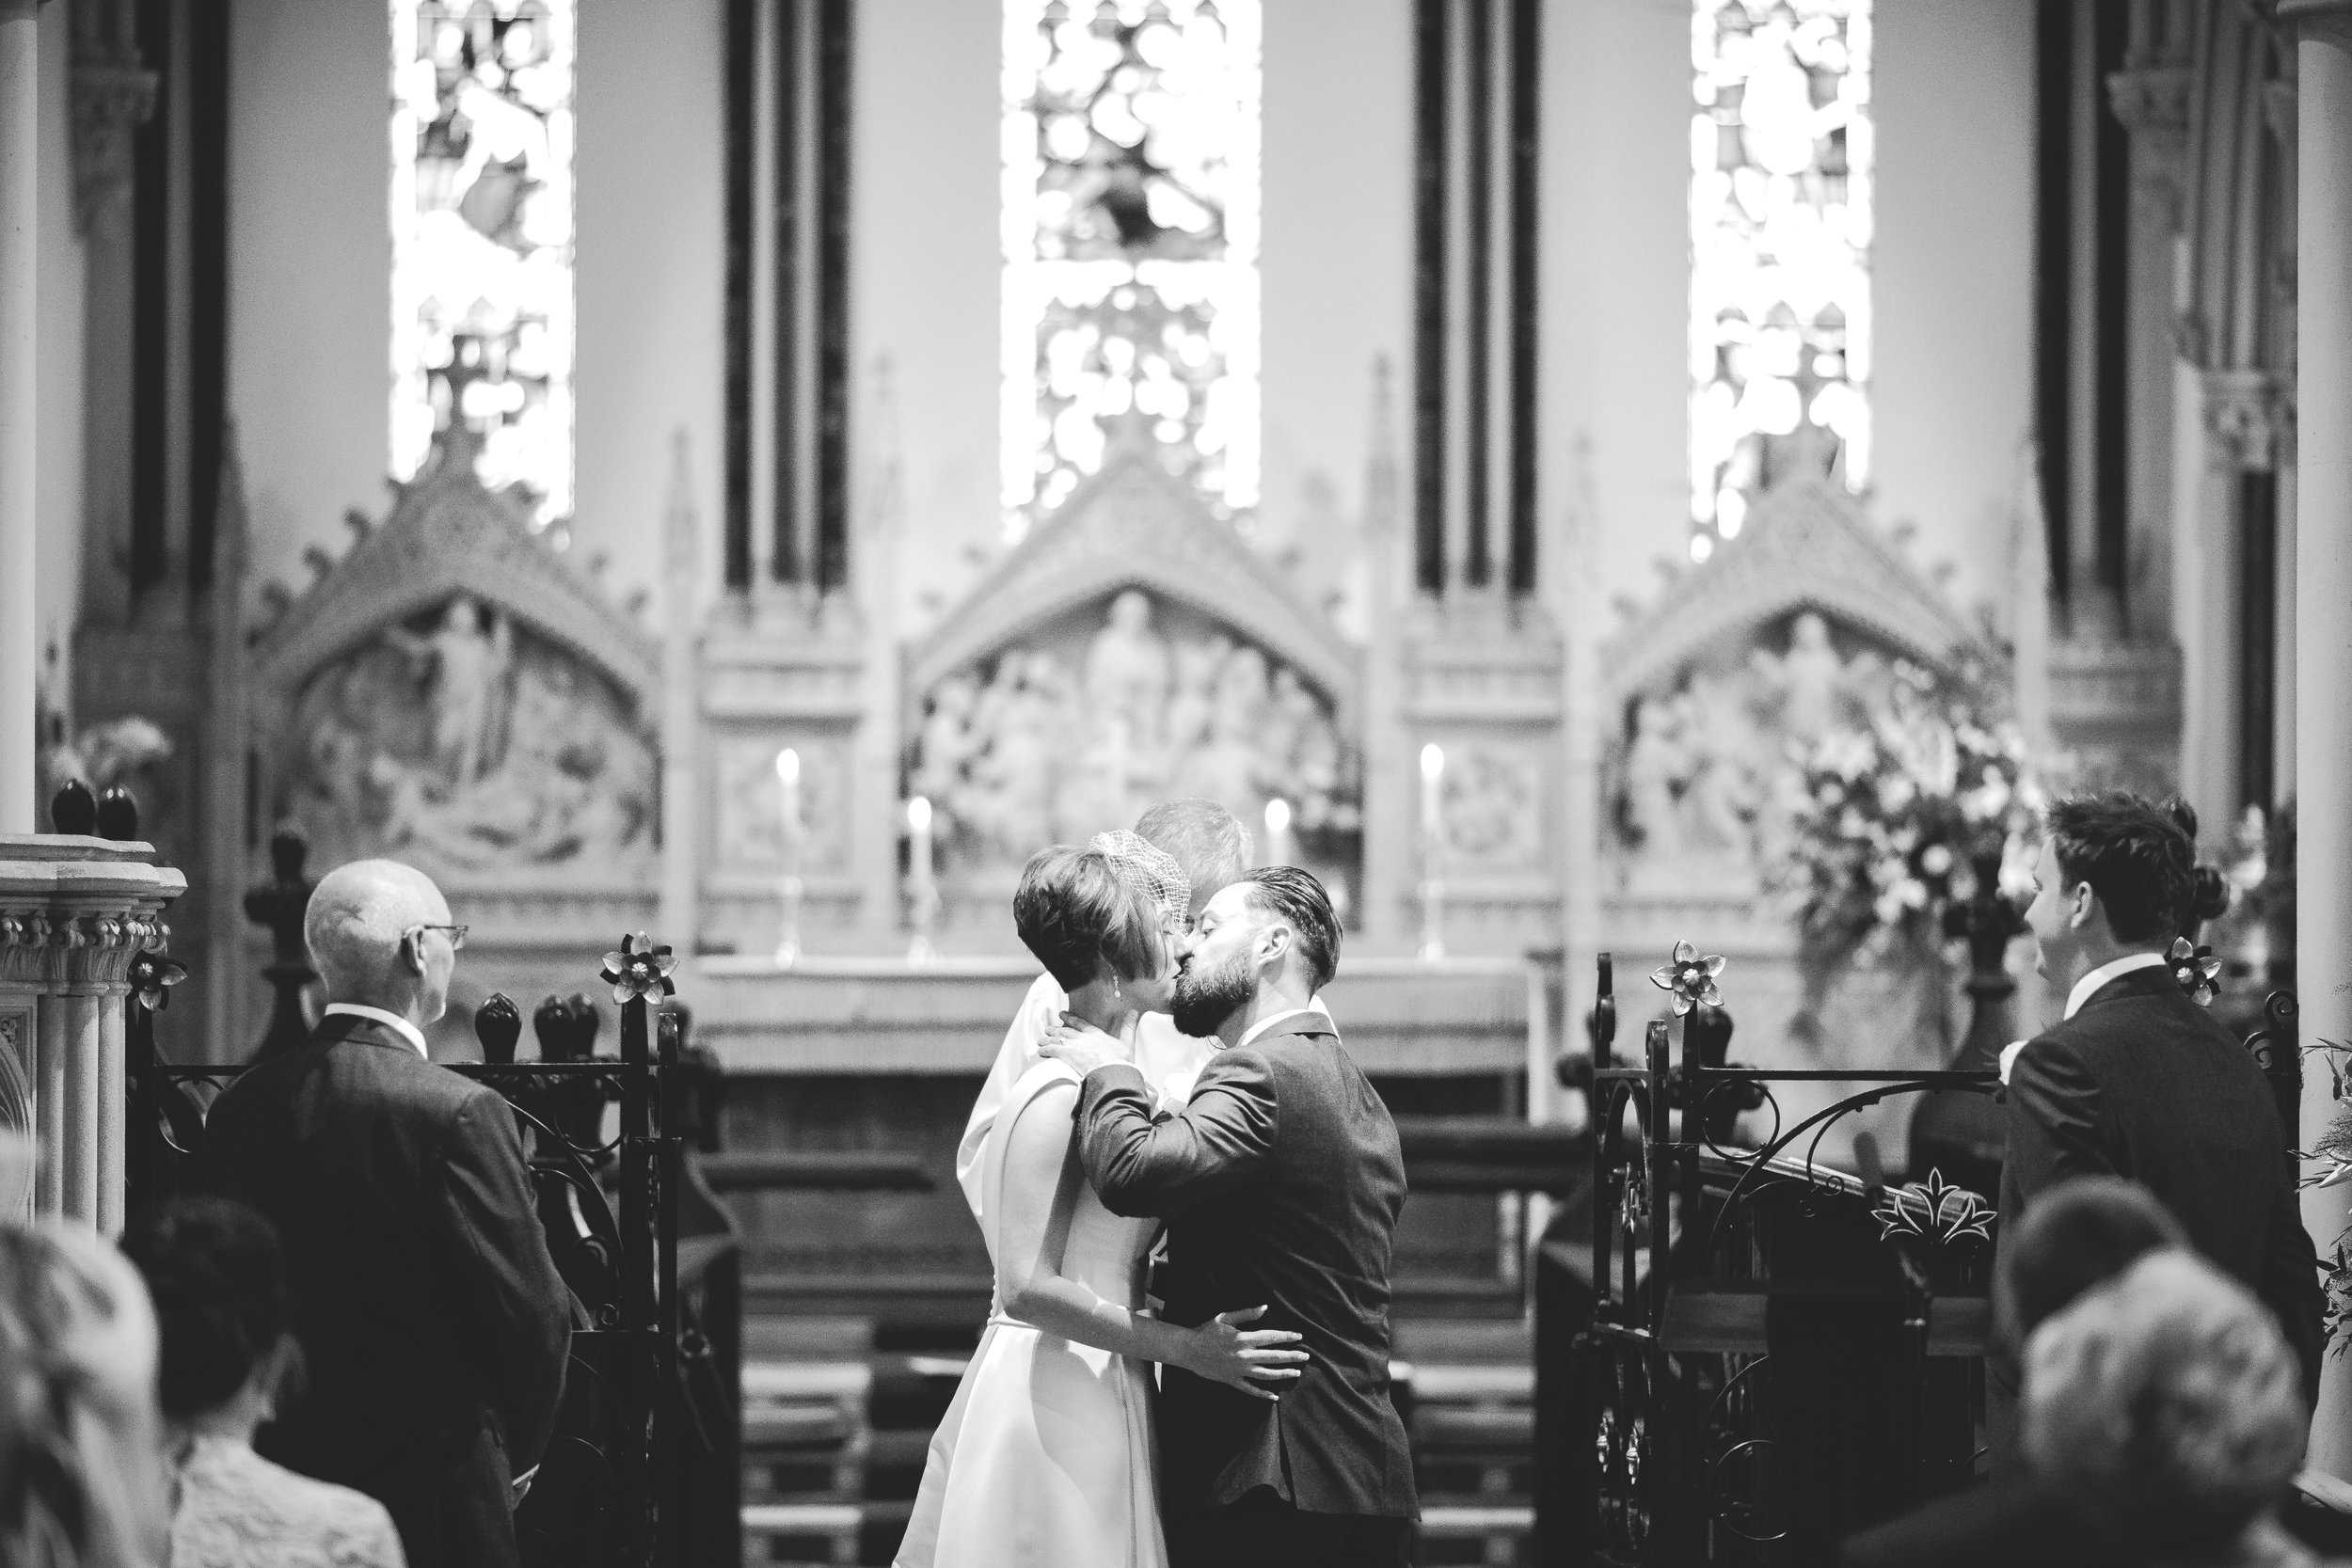 Saffron Walden simple and elegant wedding